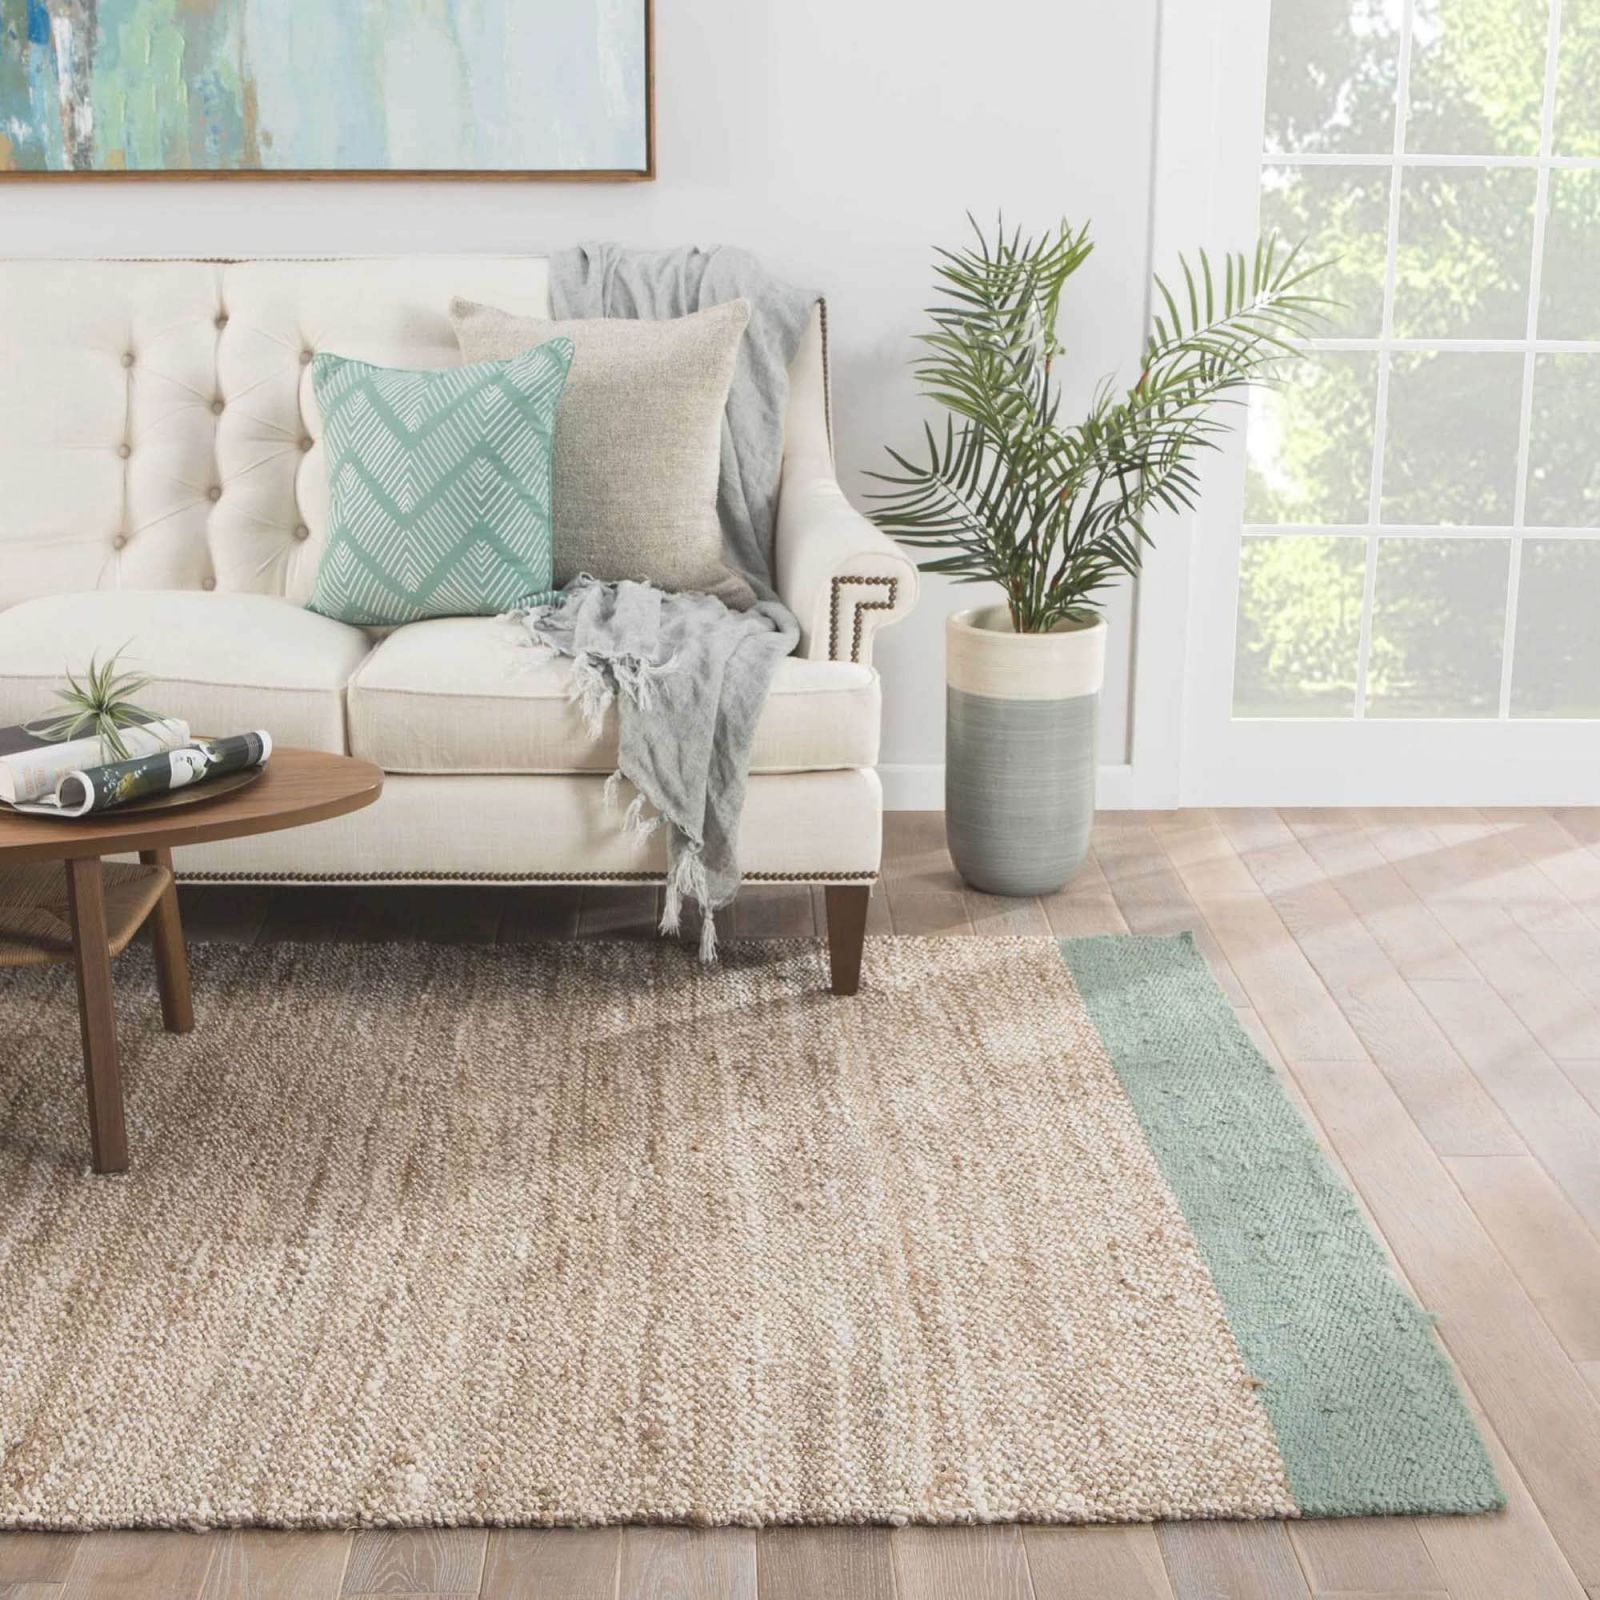 "Delphin Natural Bordered Tan/ Blue Area Rug (8' X 10') – 7'10"" X 9'10"" for 10+ Inspiration For Blue And Tan Living Room"